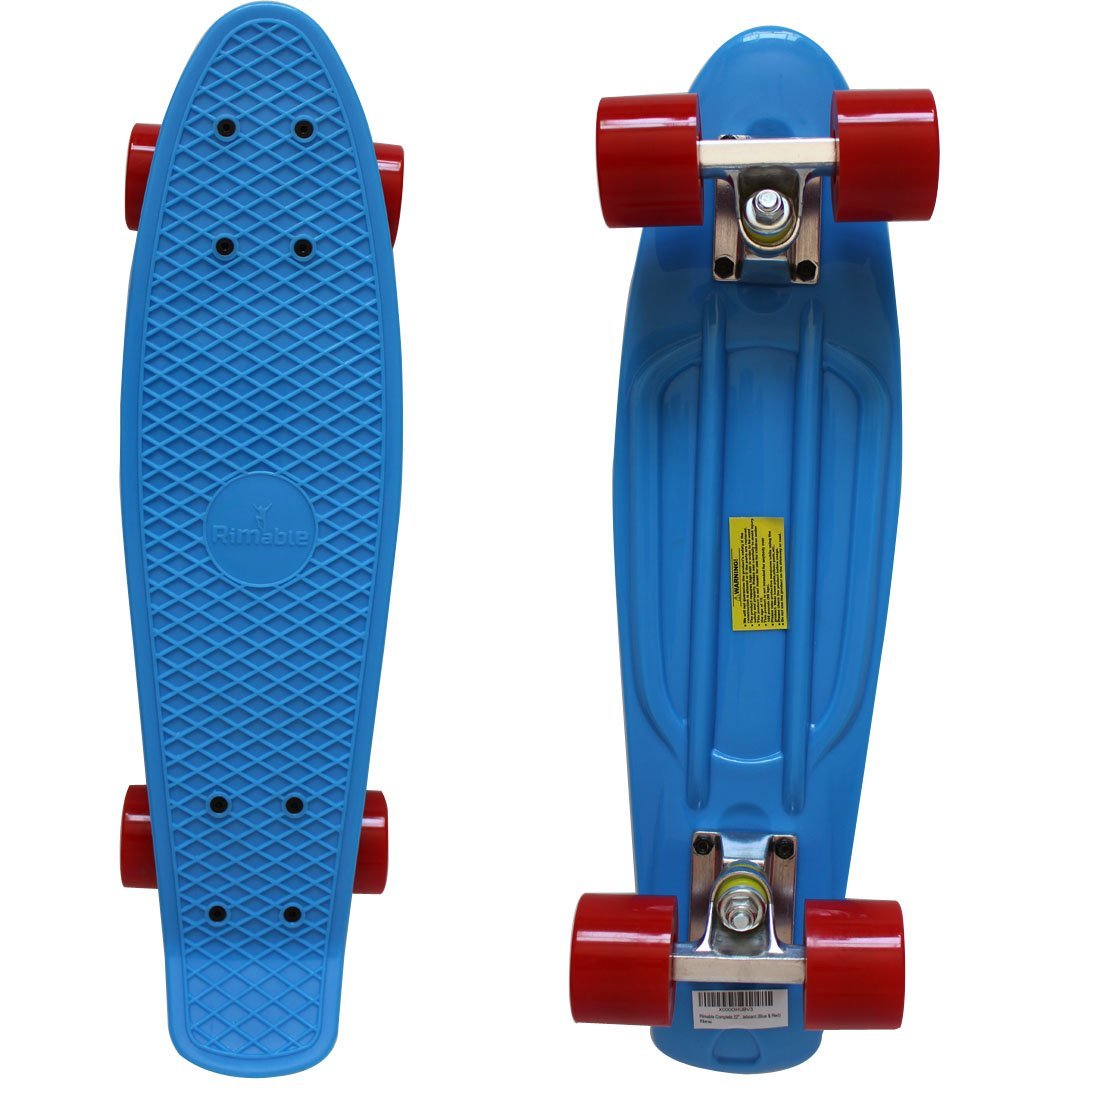 Rimable Complete 22'' Skateboard (Blue & Red)